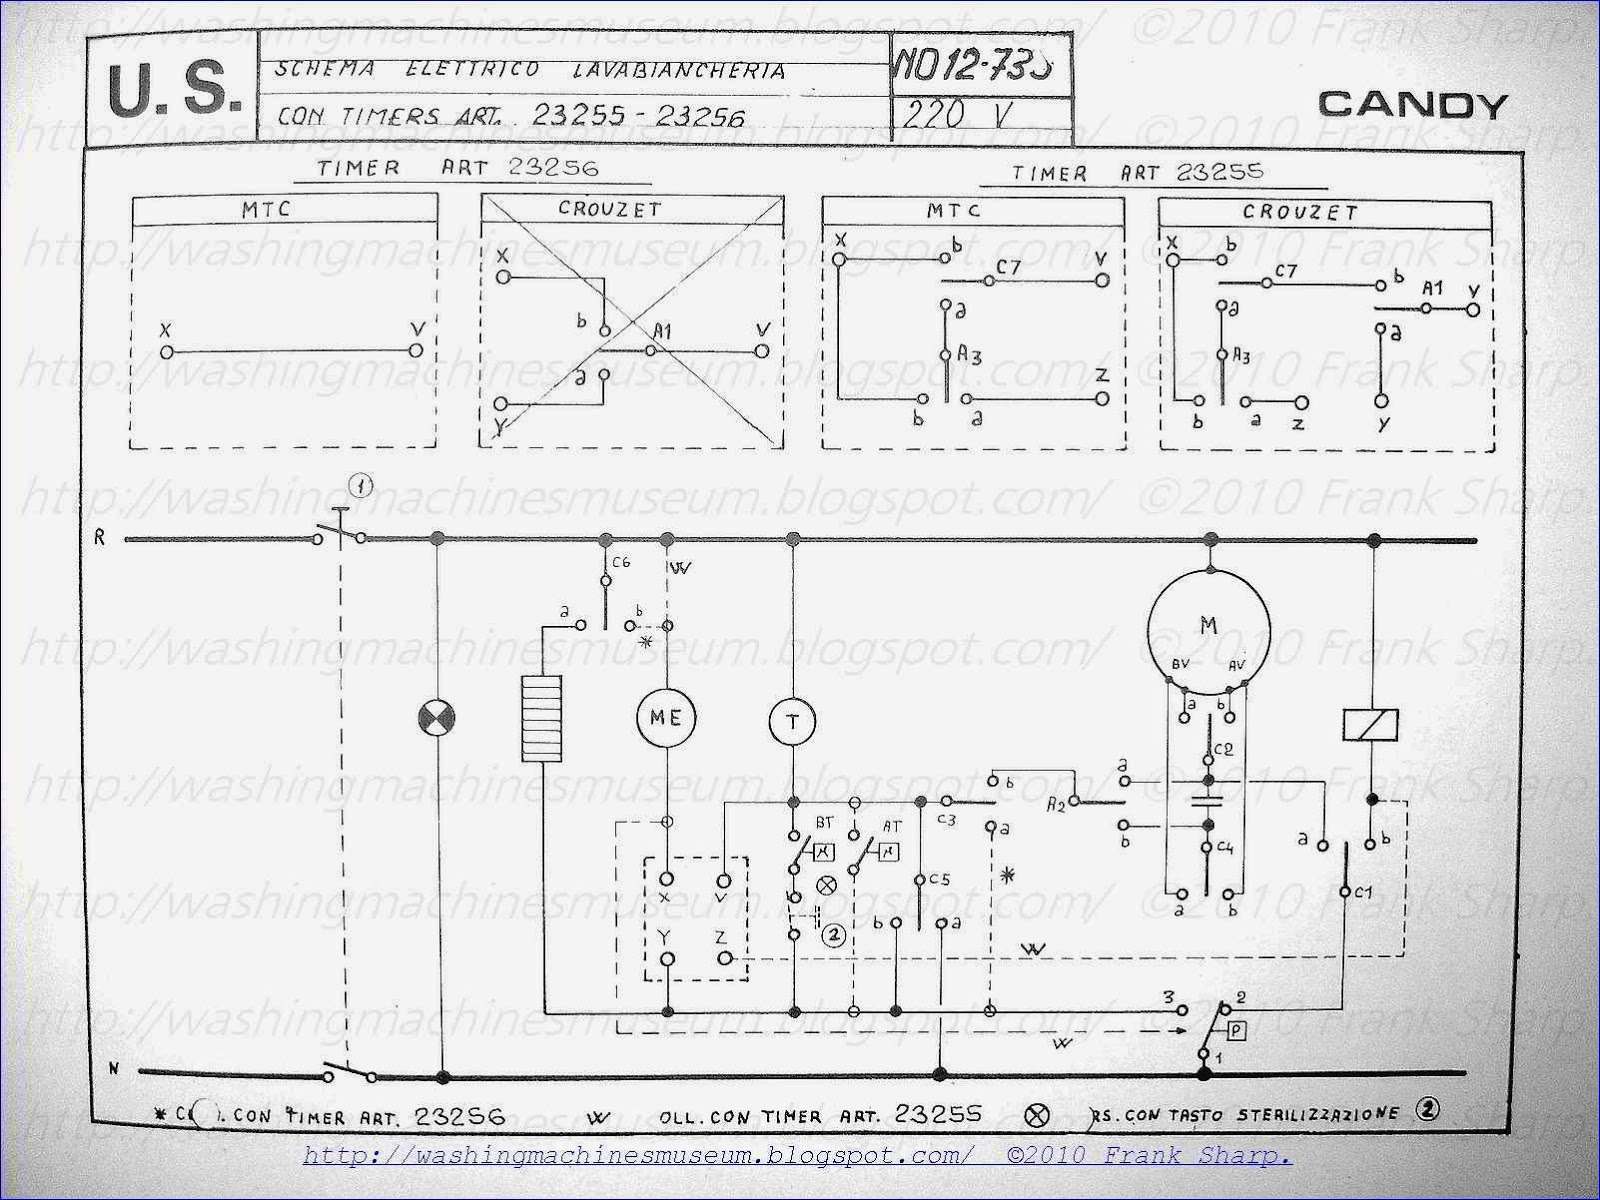 Kenmore Washing Machine Motor Wiring Diagram - Somurich.com on eaton wiring diagrams, whirlpool wiring diagrams, hobart wiring diagrams, gibson wiring diagrams, westinghouse wiring diagrams, frigidaire wiring diagrams, viking wiring diagrams, craftsman wiring diagrams, hotpoint wiring diagrams, ge wiring diagrams, buckley wiring diagrams, maytag wiring diagrams, sears wiring diagrams, dacor wiring diagrams, lg wiring diagrams, speed queen wiring diagrams, panasonic wiring diagrams, amana wiring diagrams, samsung wiring diagrams, kitchenaid wiring diagrams,